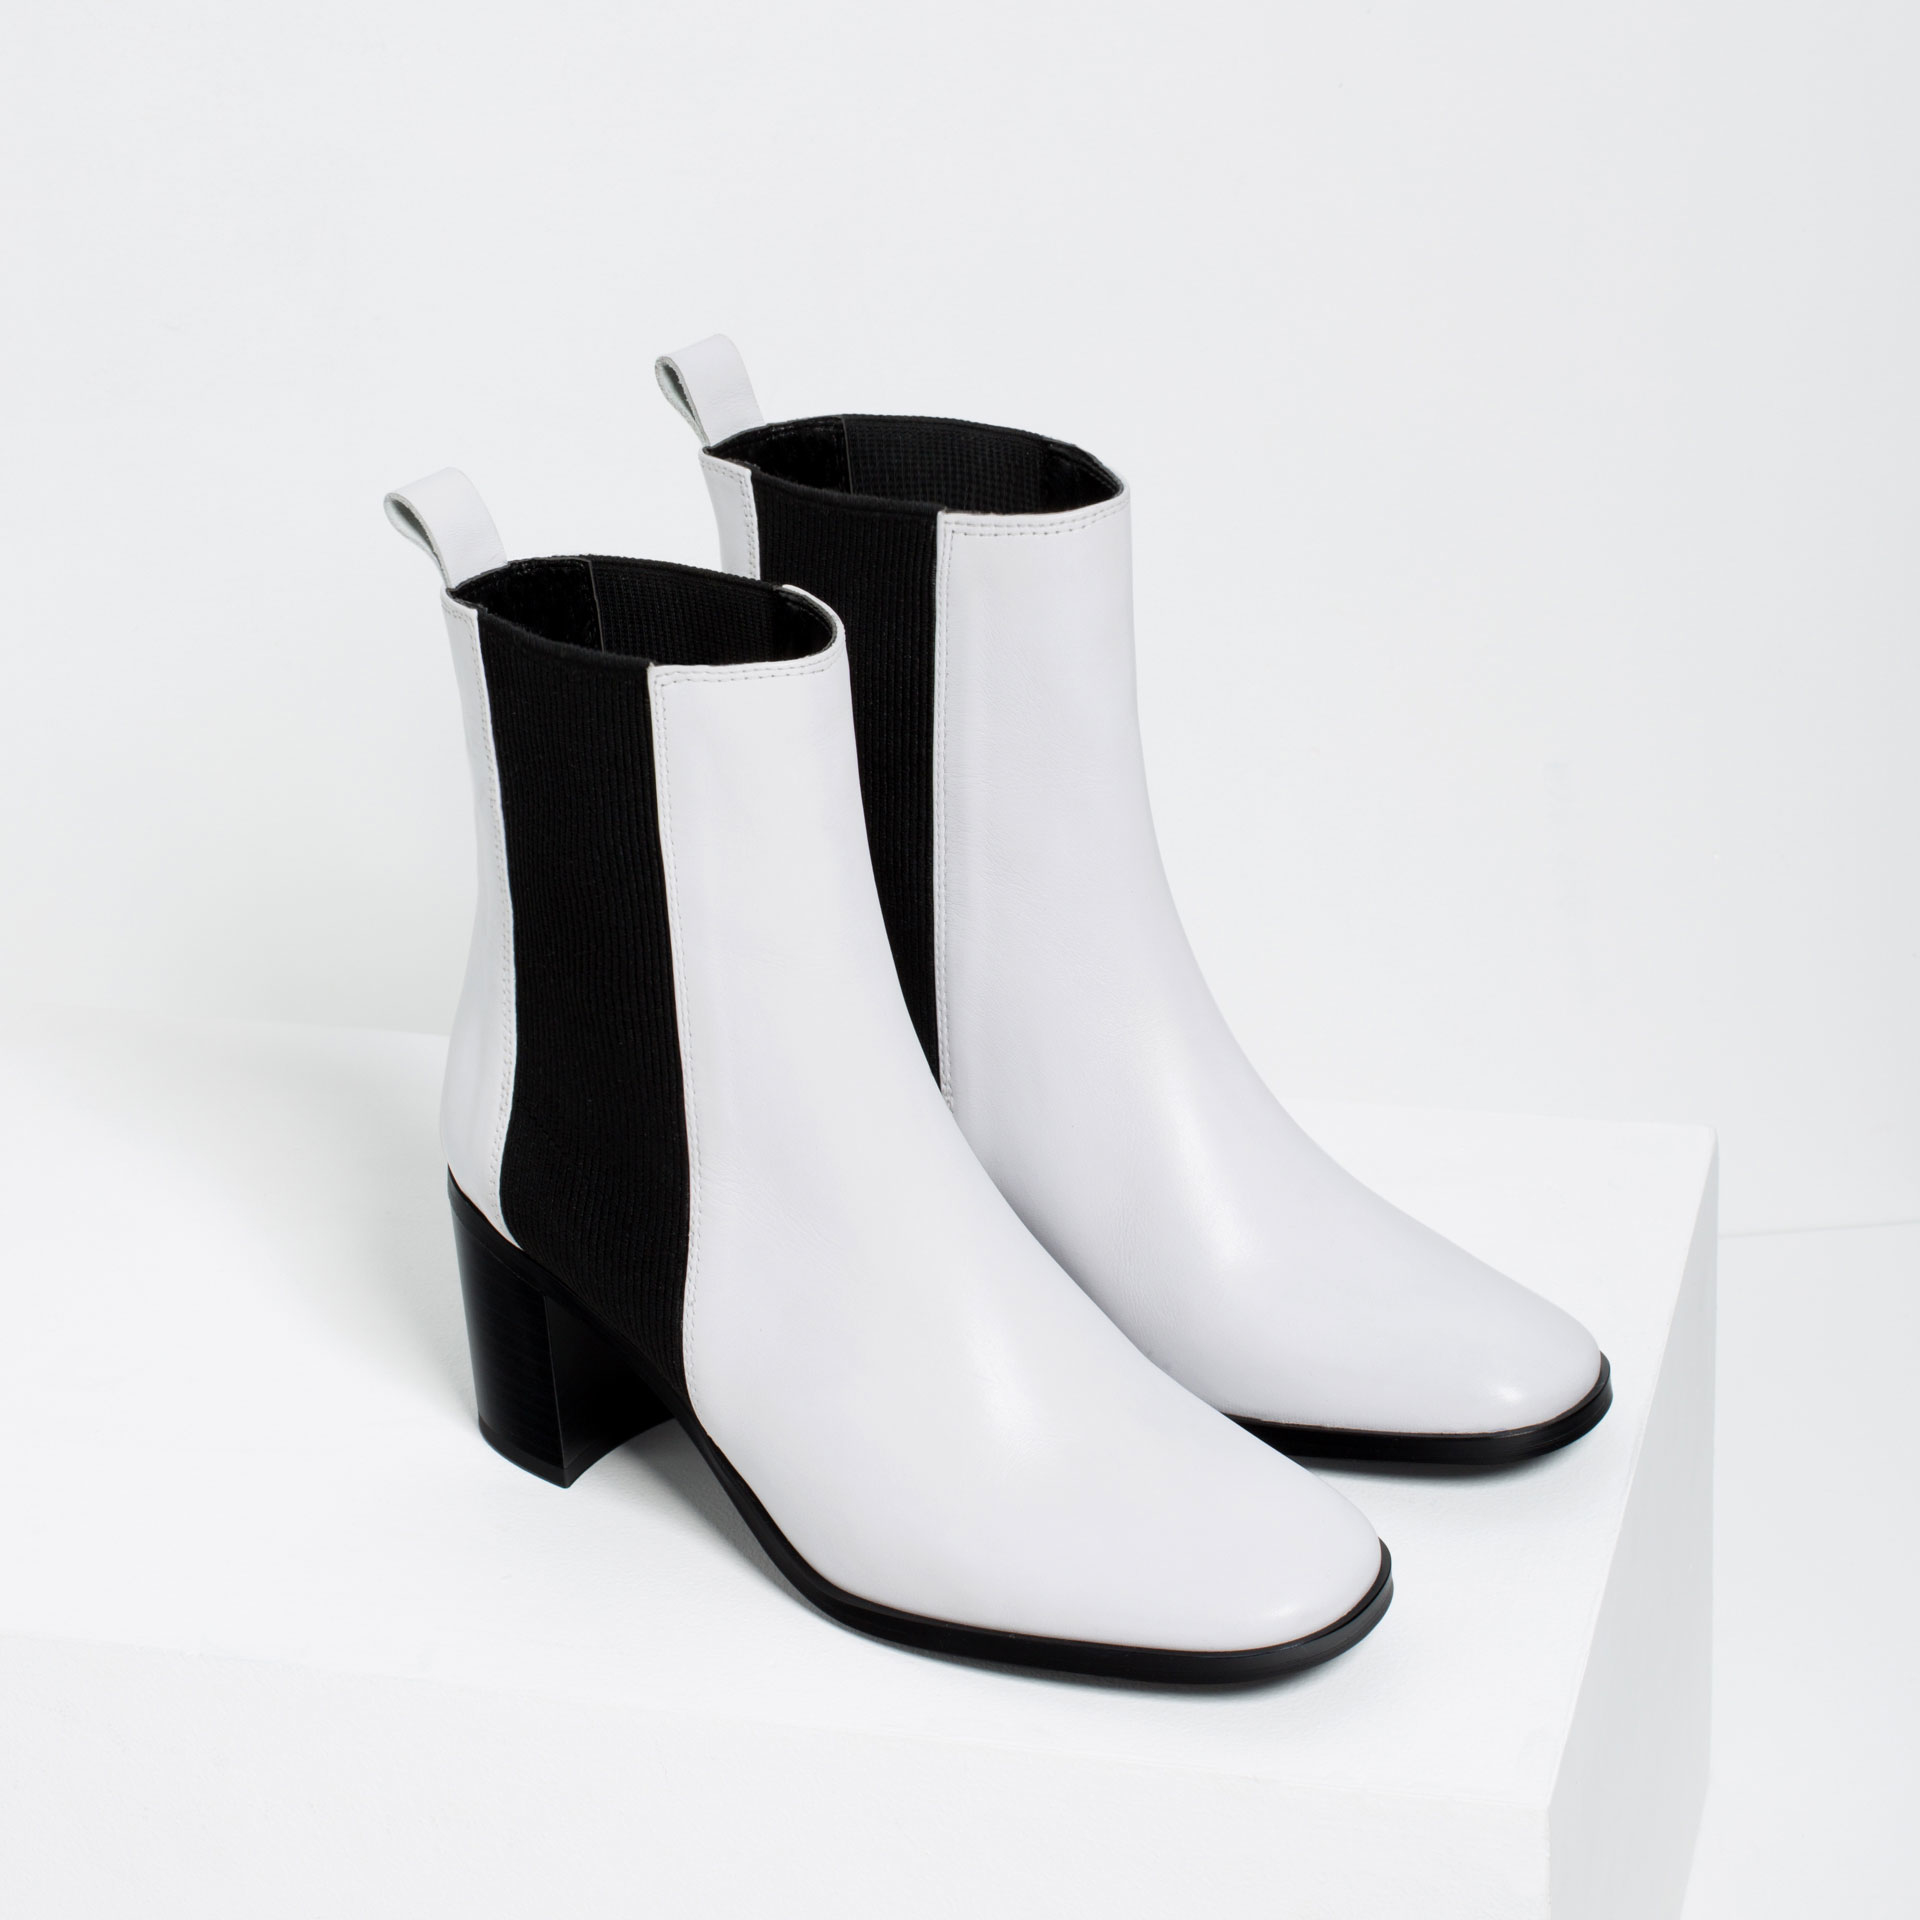 Zara Elastic Leather Ankle Boots in White | Lyst